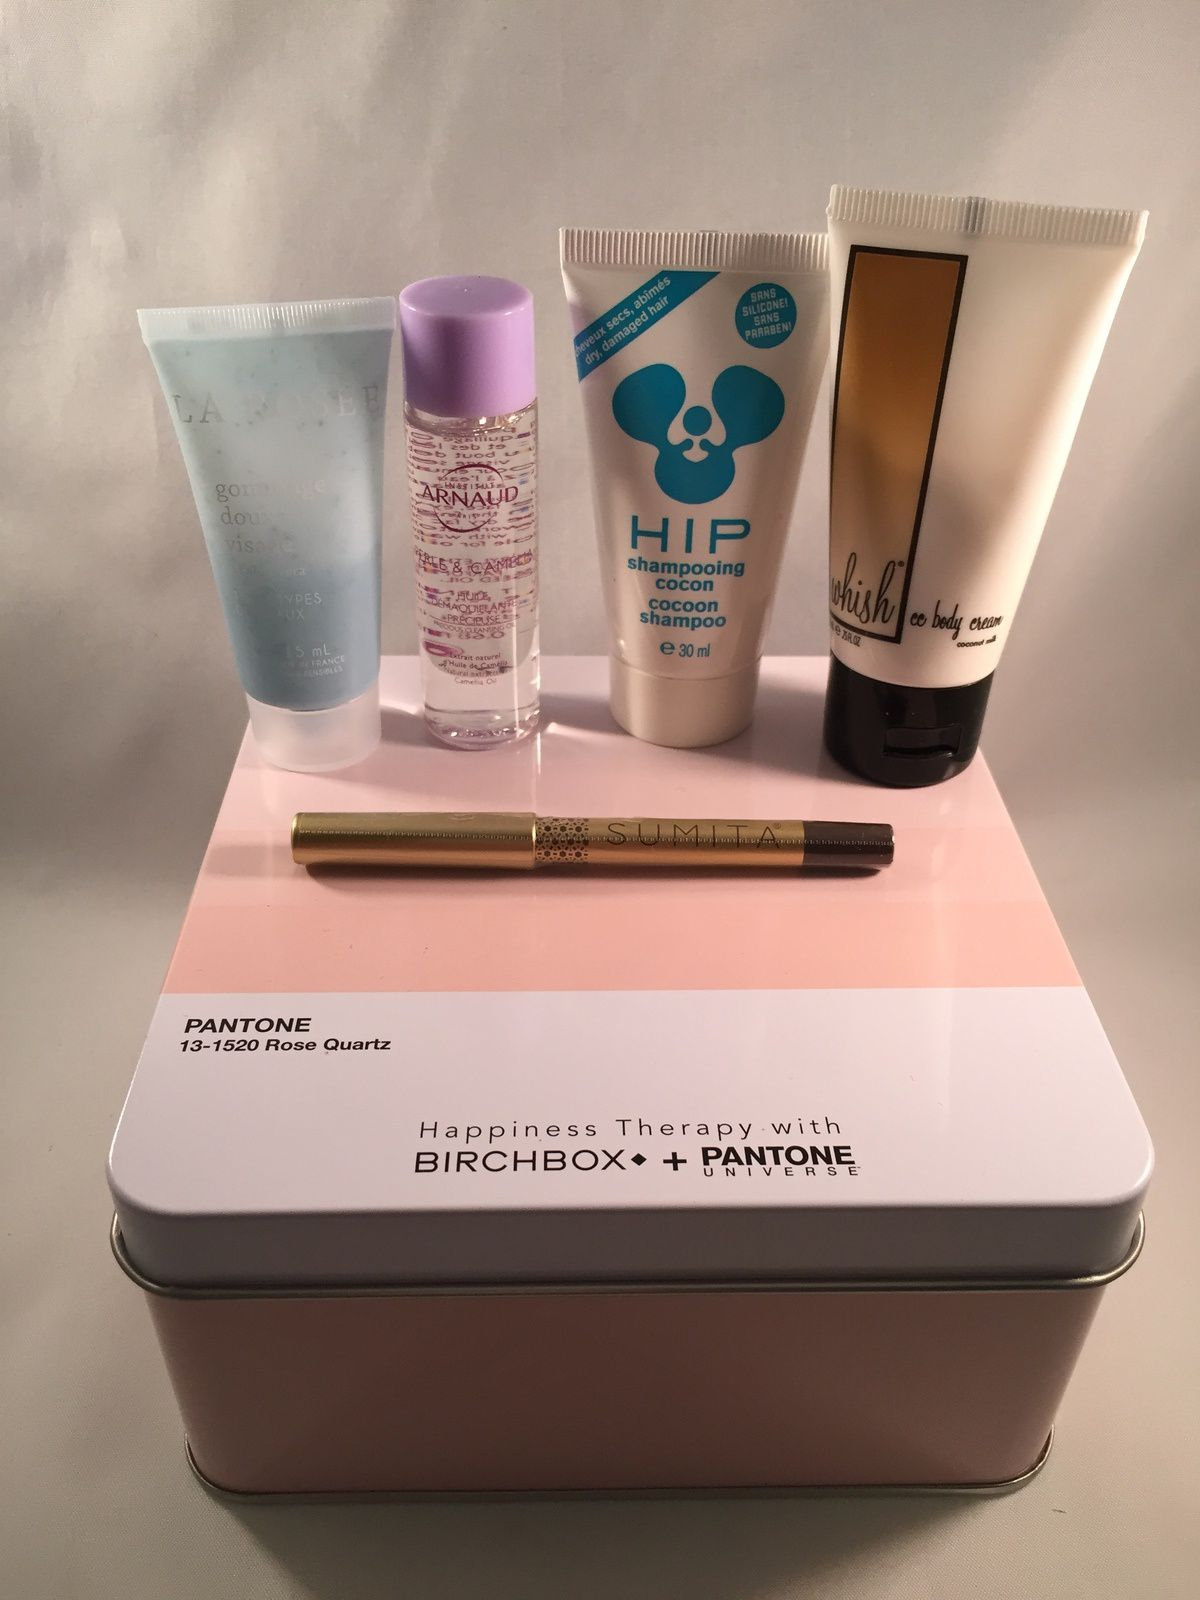 Happiness Therapy with Birchbox + Pantone - avril 2016